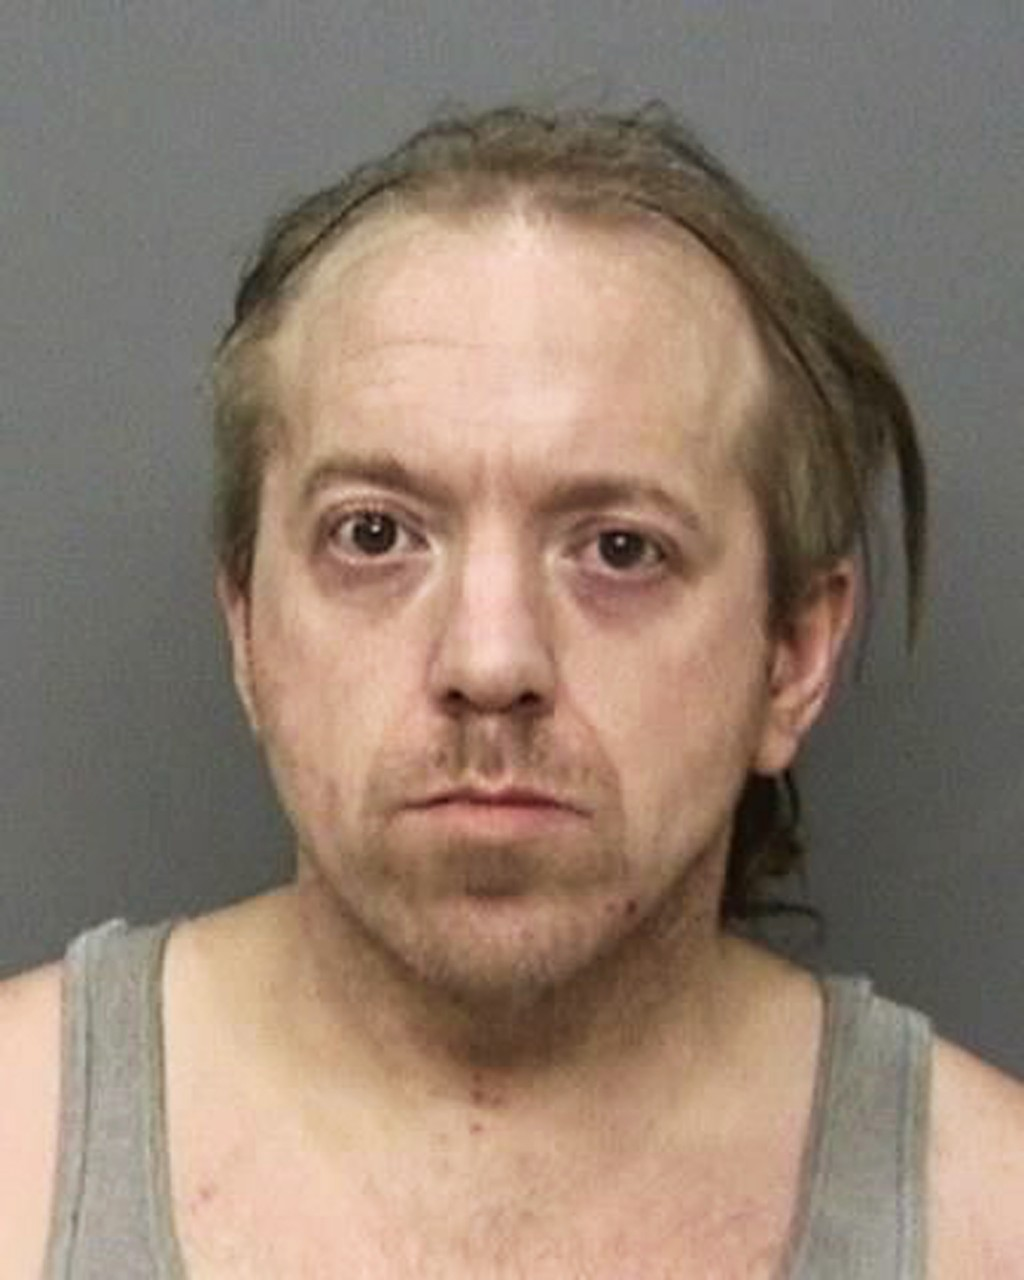 This undated booking photo provided by the Shasta County, Calif., Sheriff's Office shows Curtis Culver, 45, who was arrested after Brian Hawkins confe